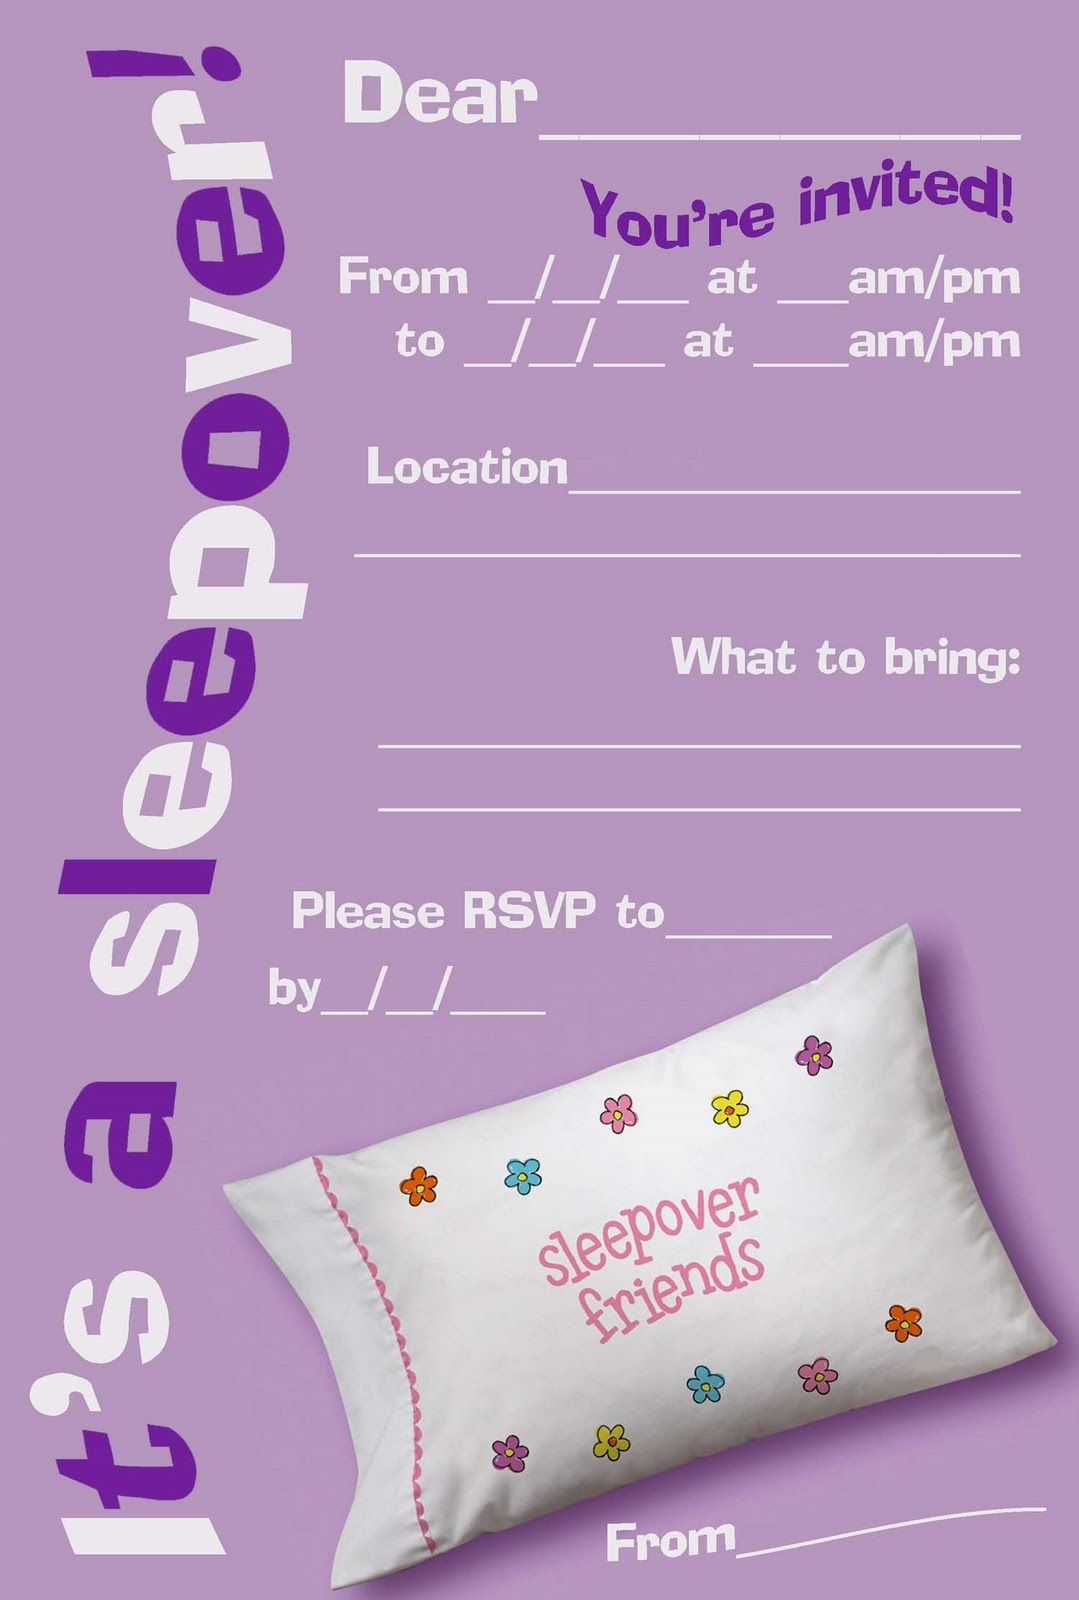 free printable girls slumber party invitations Google Search – Free Printable Party Invitations for Kids Birthday Parties